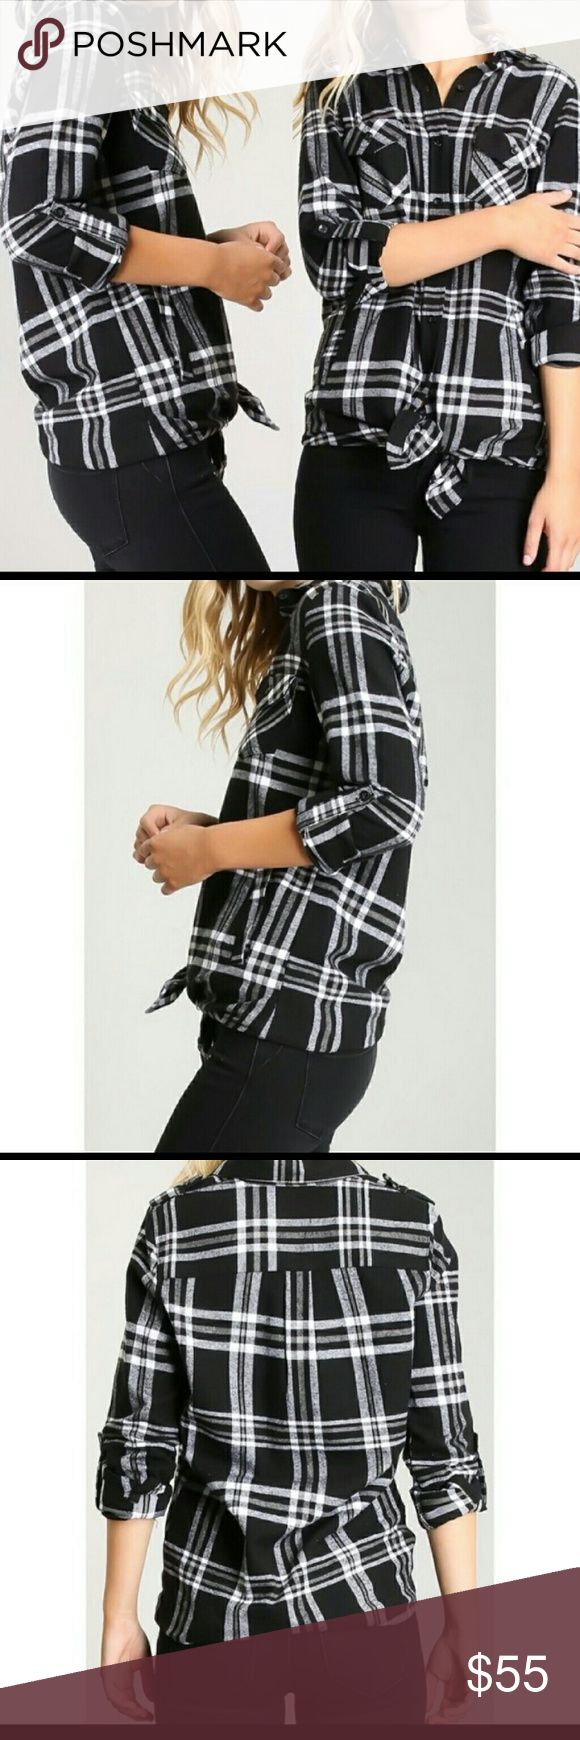 Plaid Top @blushonme at Poshmark   Plaid Top - Navy/Ivory  NOTE - Stock photos used to show similar style. Actual item is in pictures 4&5.  Plaid is in ladies. This cute top has a thin, soft material with two front pockets,  sleeve fold button closure.  100% Polyester Tops Button Down Shirts